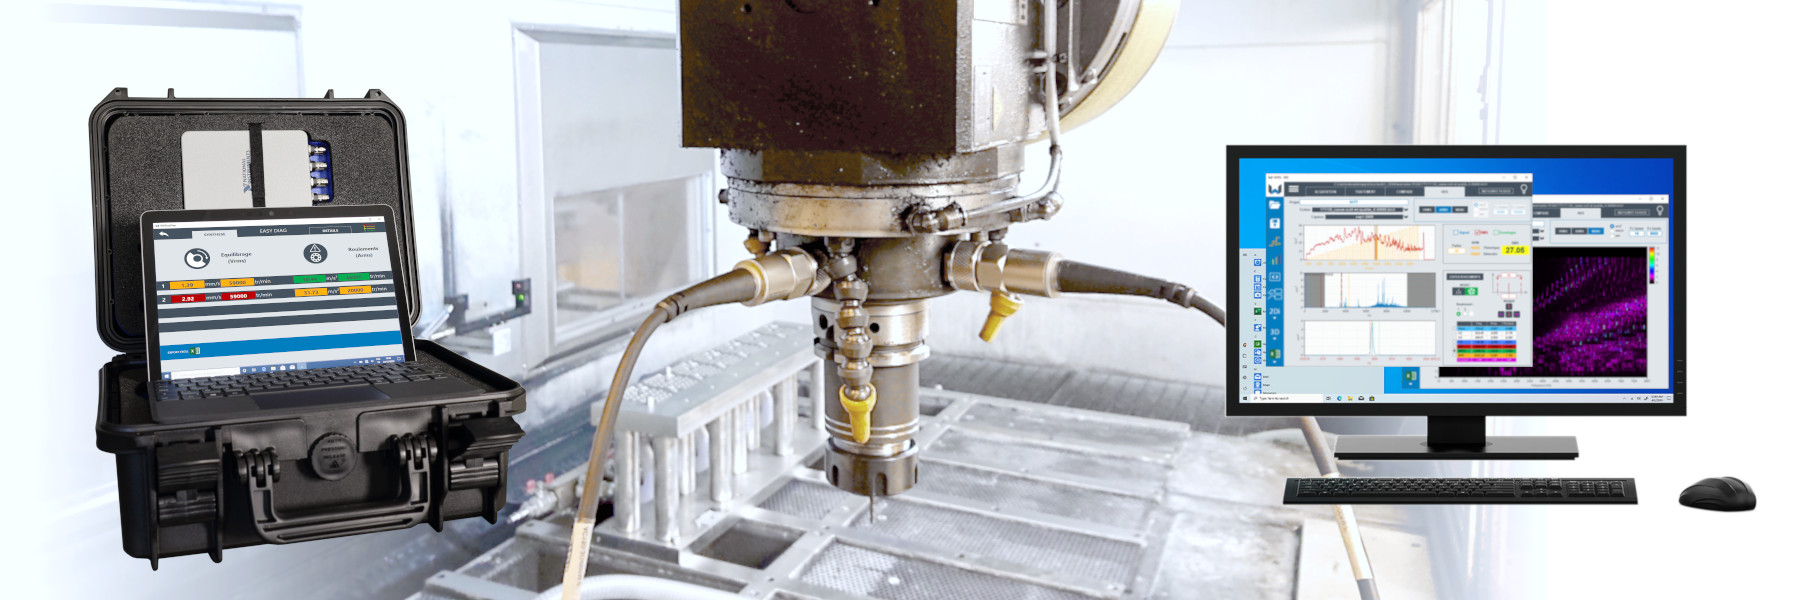 spindle monitoring with IRIS vibration diagnosis system